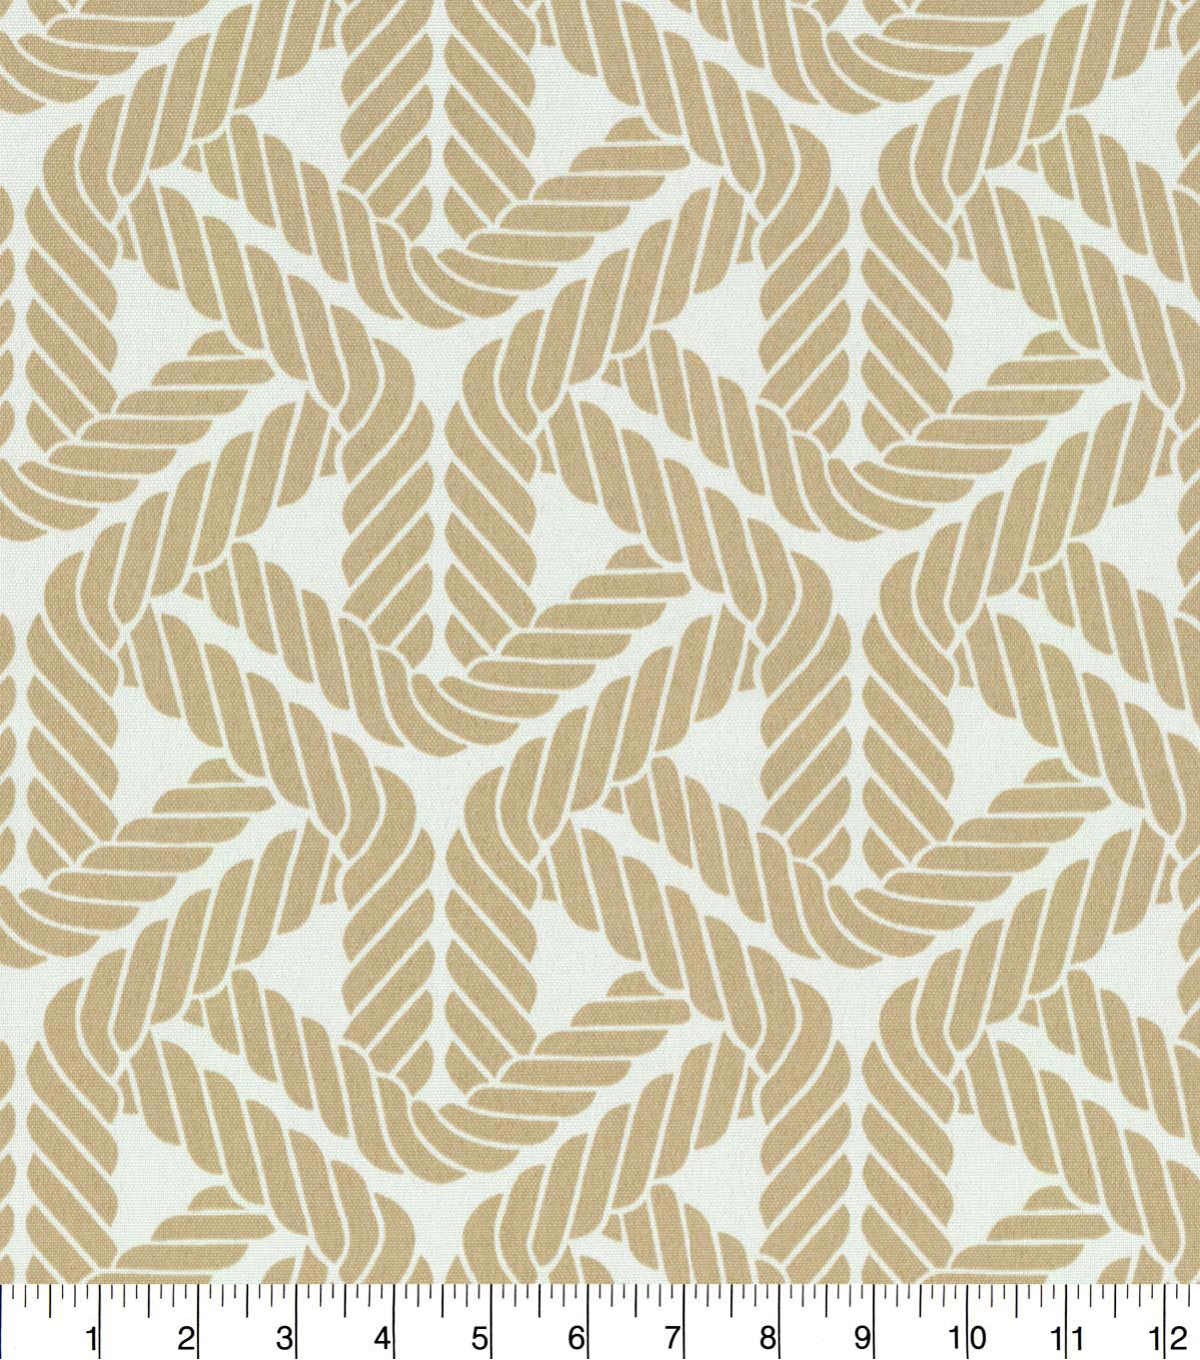 PKL Studio Outdoor Fabric 9\u0022x9\u0022 Swatch-Topsail Trellis Sand